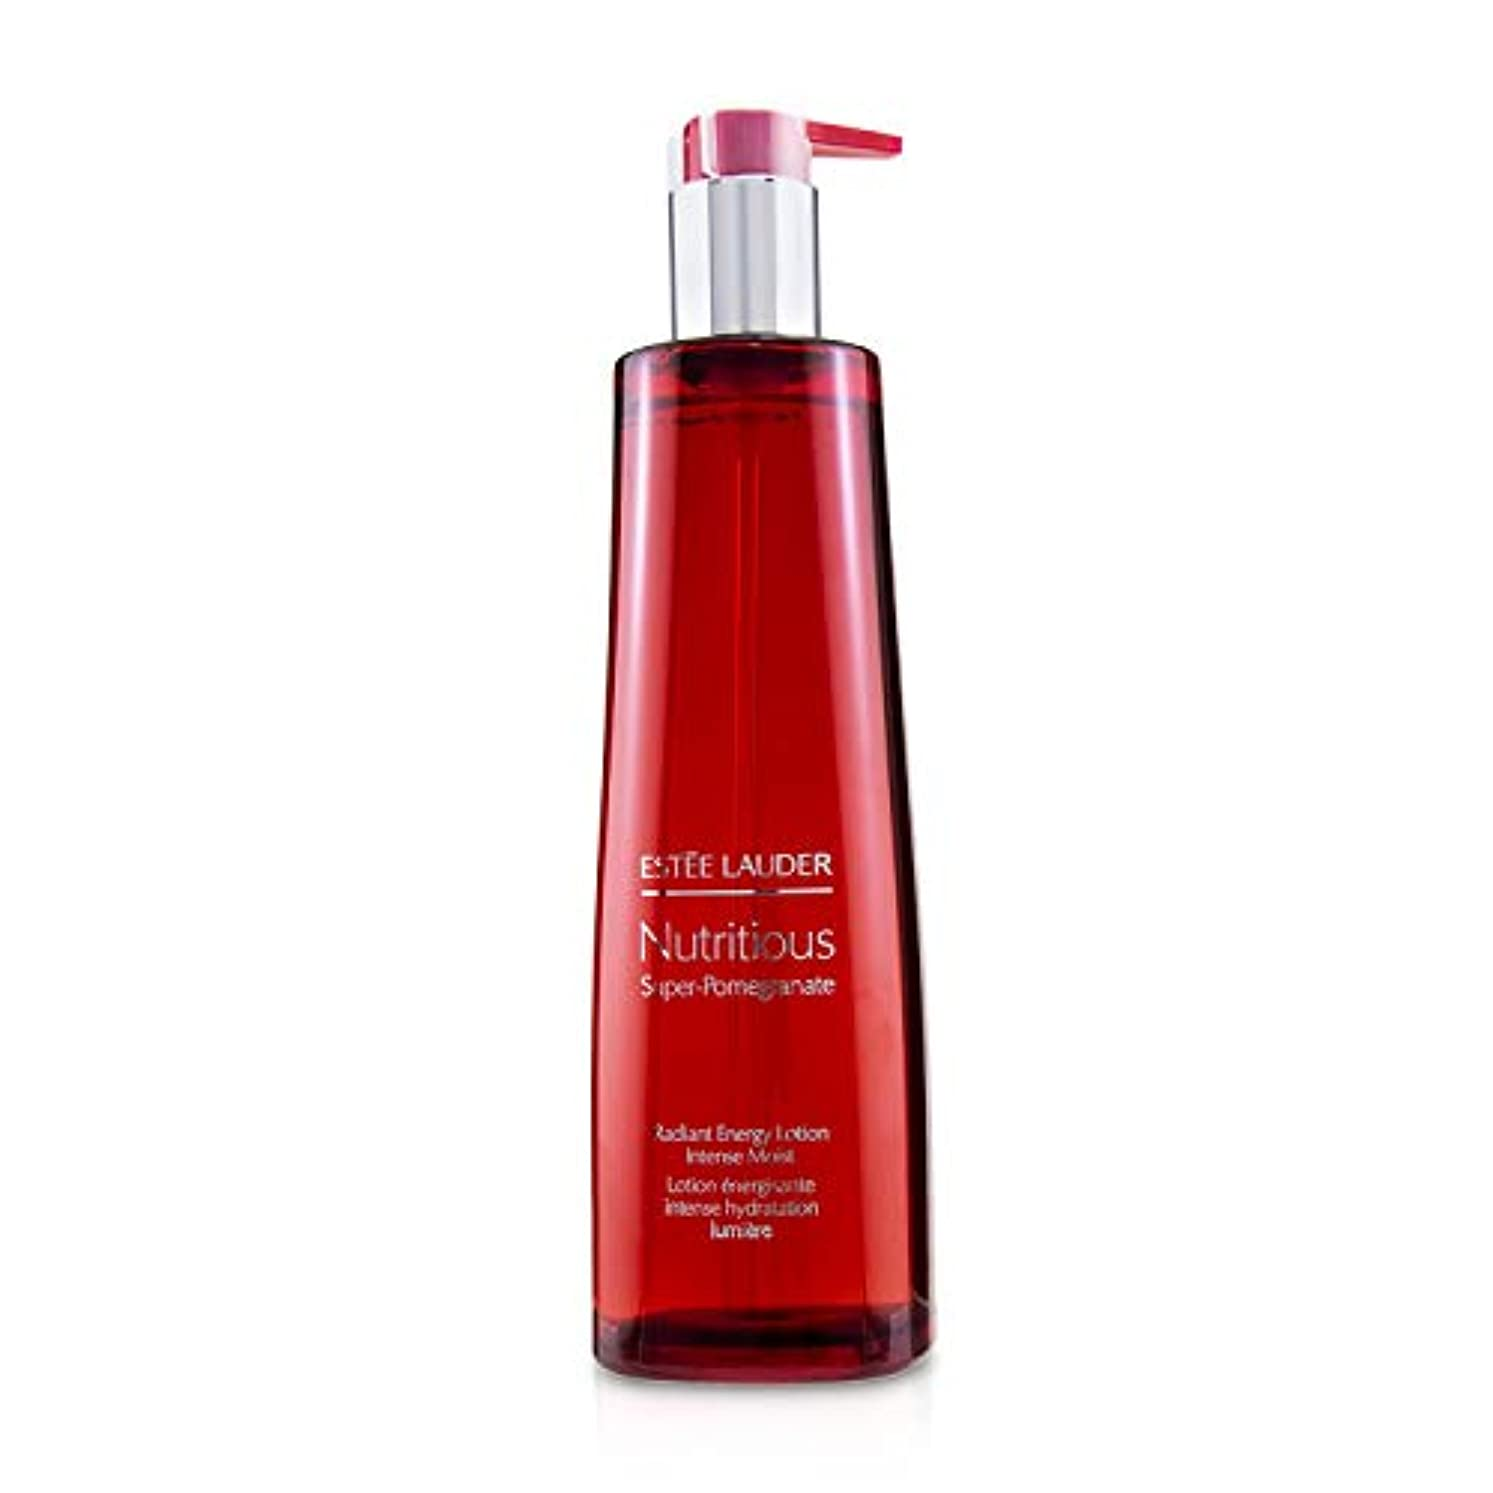 業界失望混乱させるエスティ ローダー Nutritious Super-Pomegranate Radiant Energy Lotion - Intense Moist (Limited Edition) 400ml/13.5oz並行輸入品